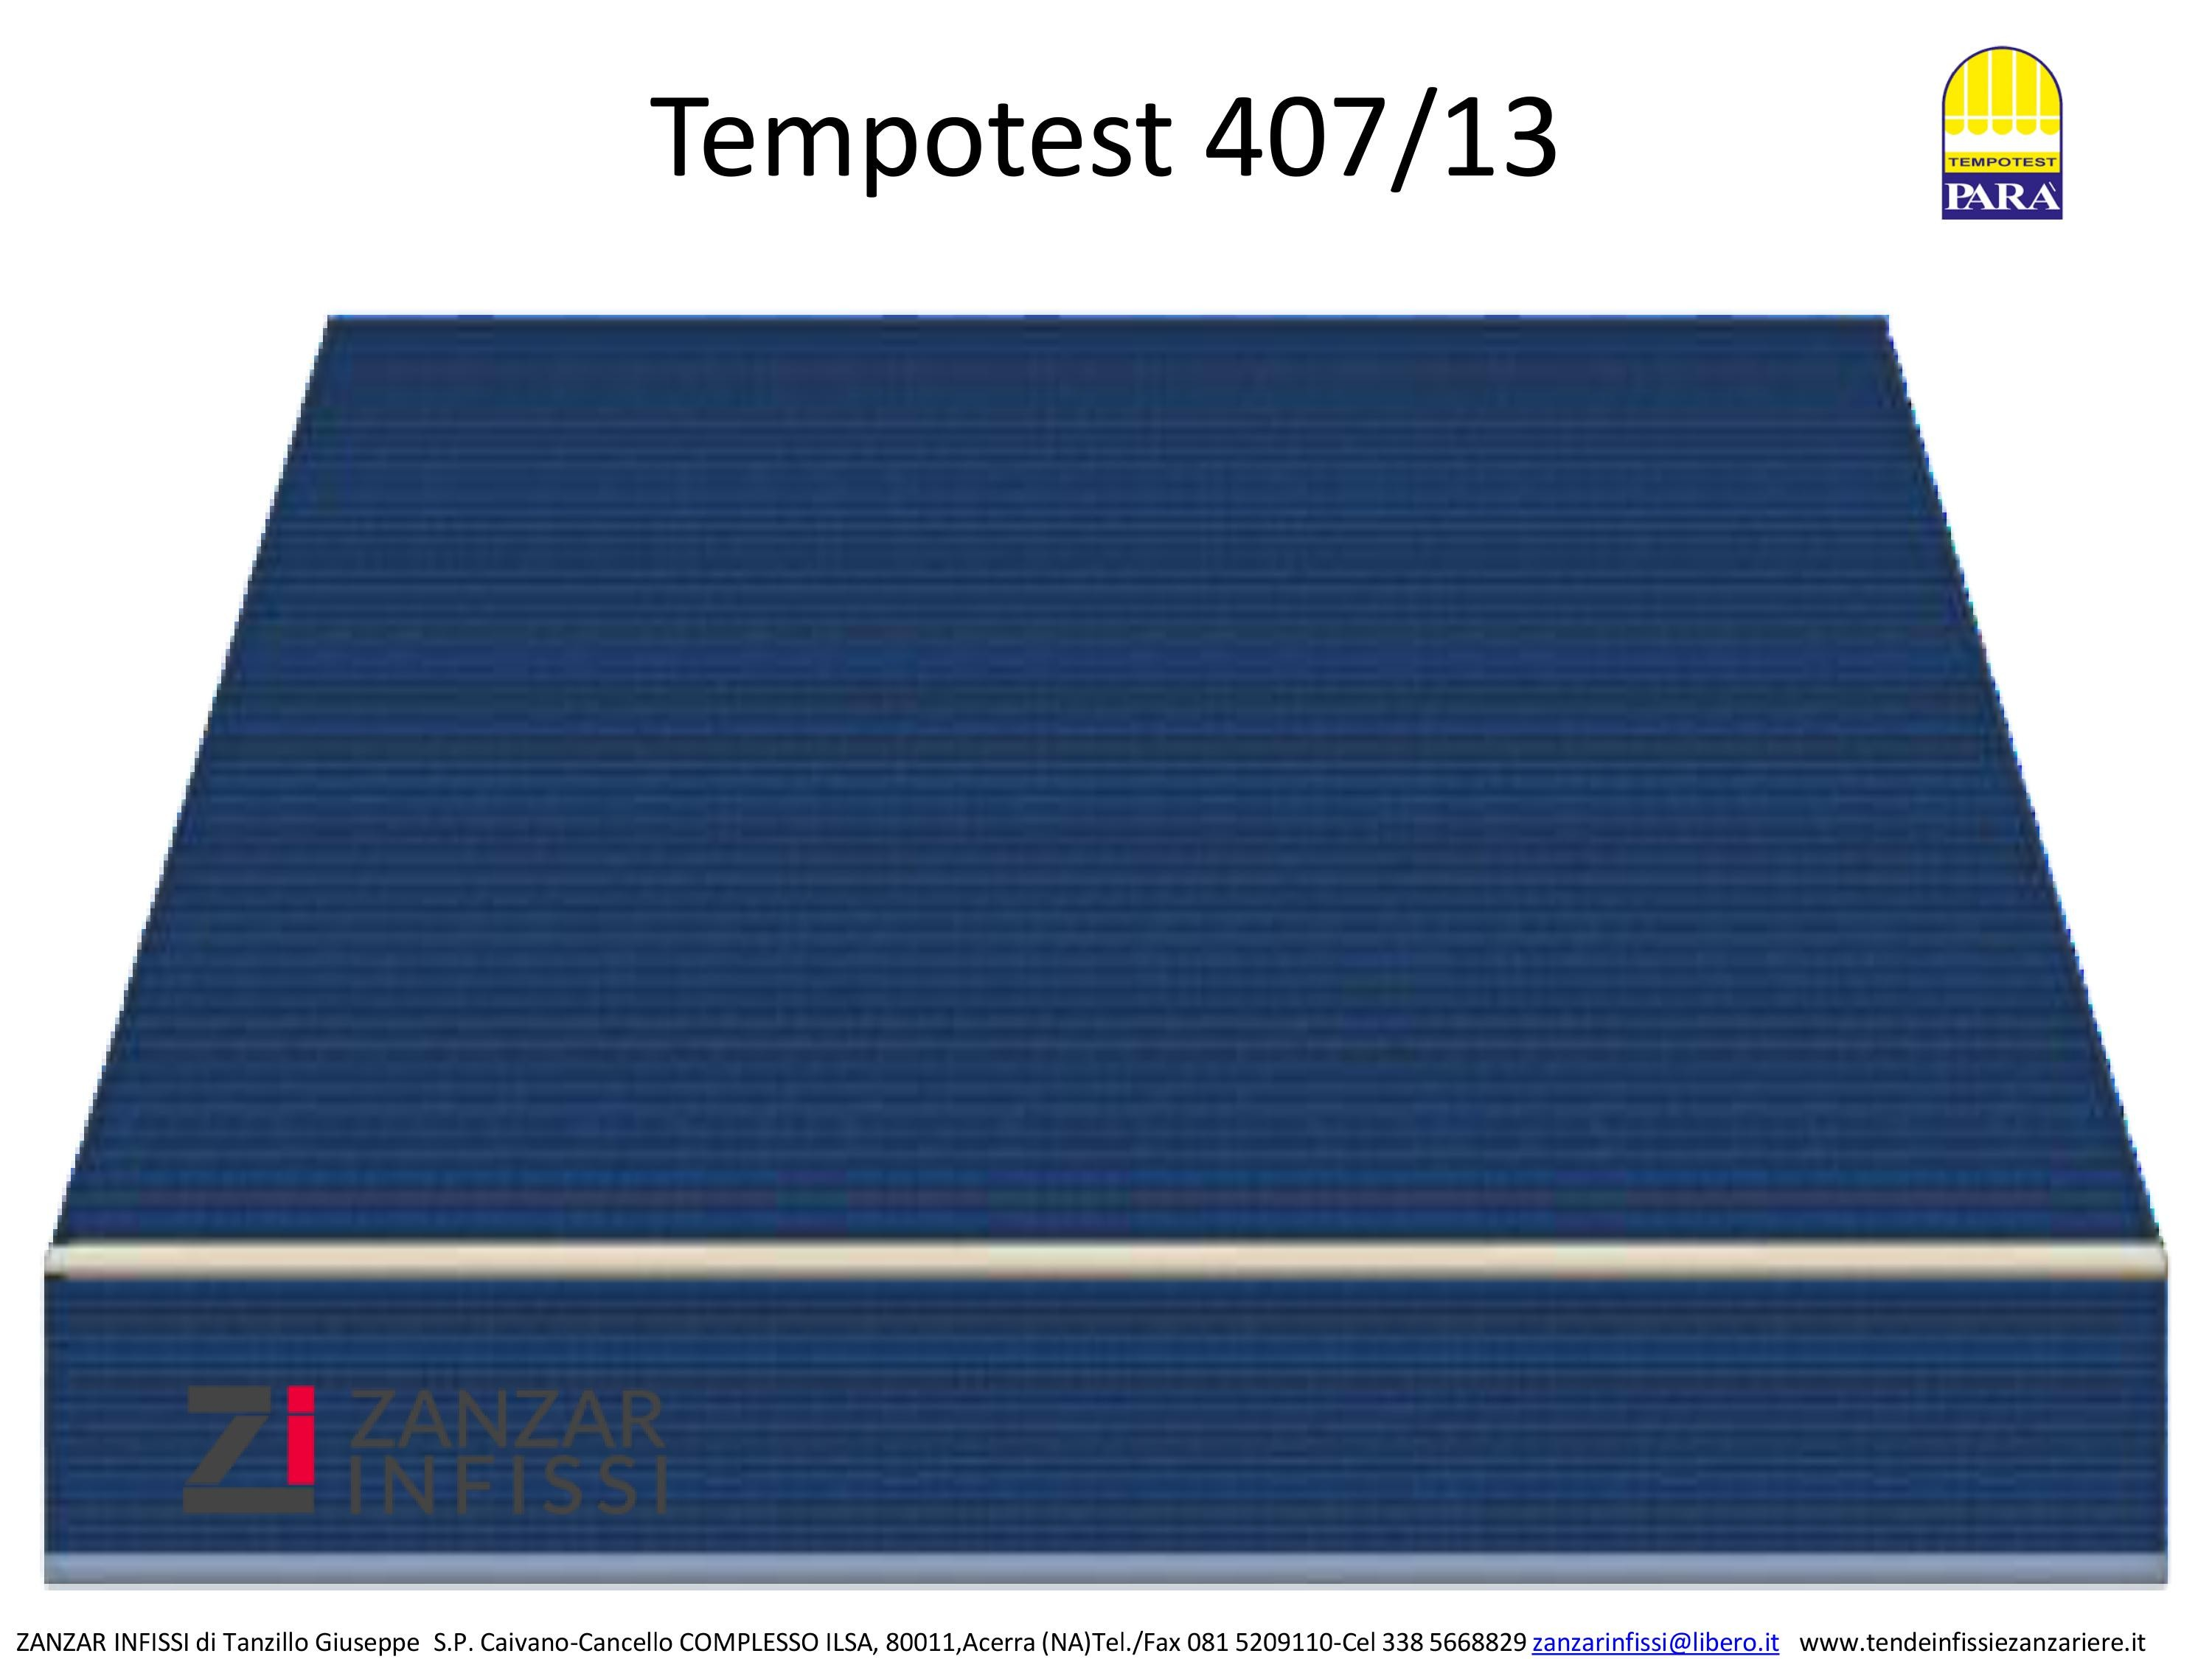 Tempotest 407/13